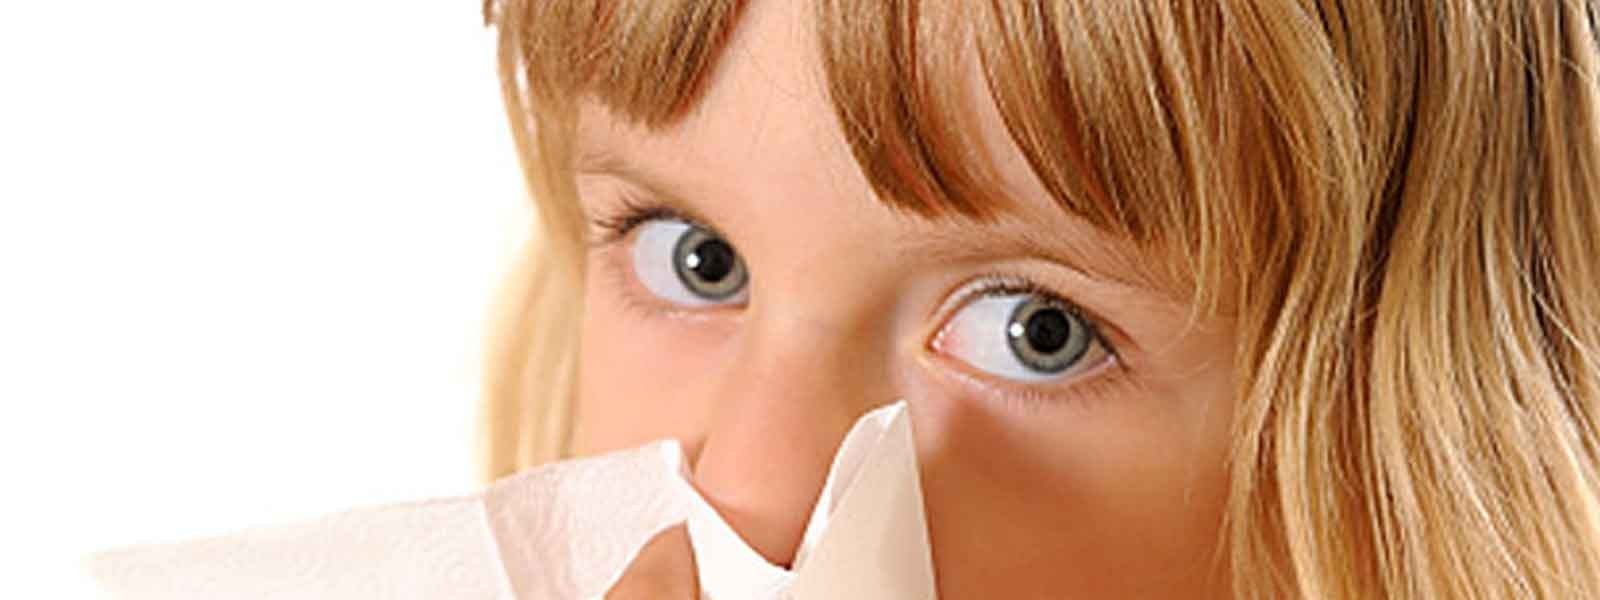 Prepare your child for the cold and flu season with seasonal flu shots. View More